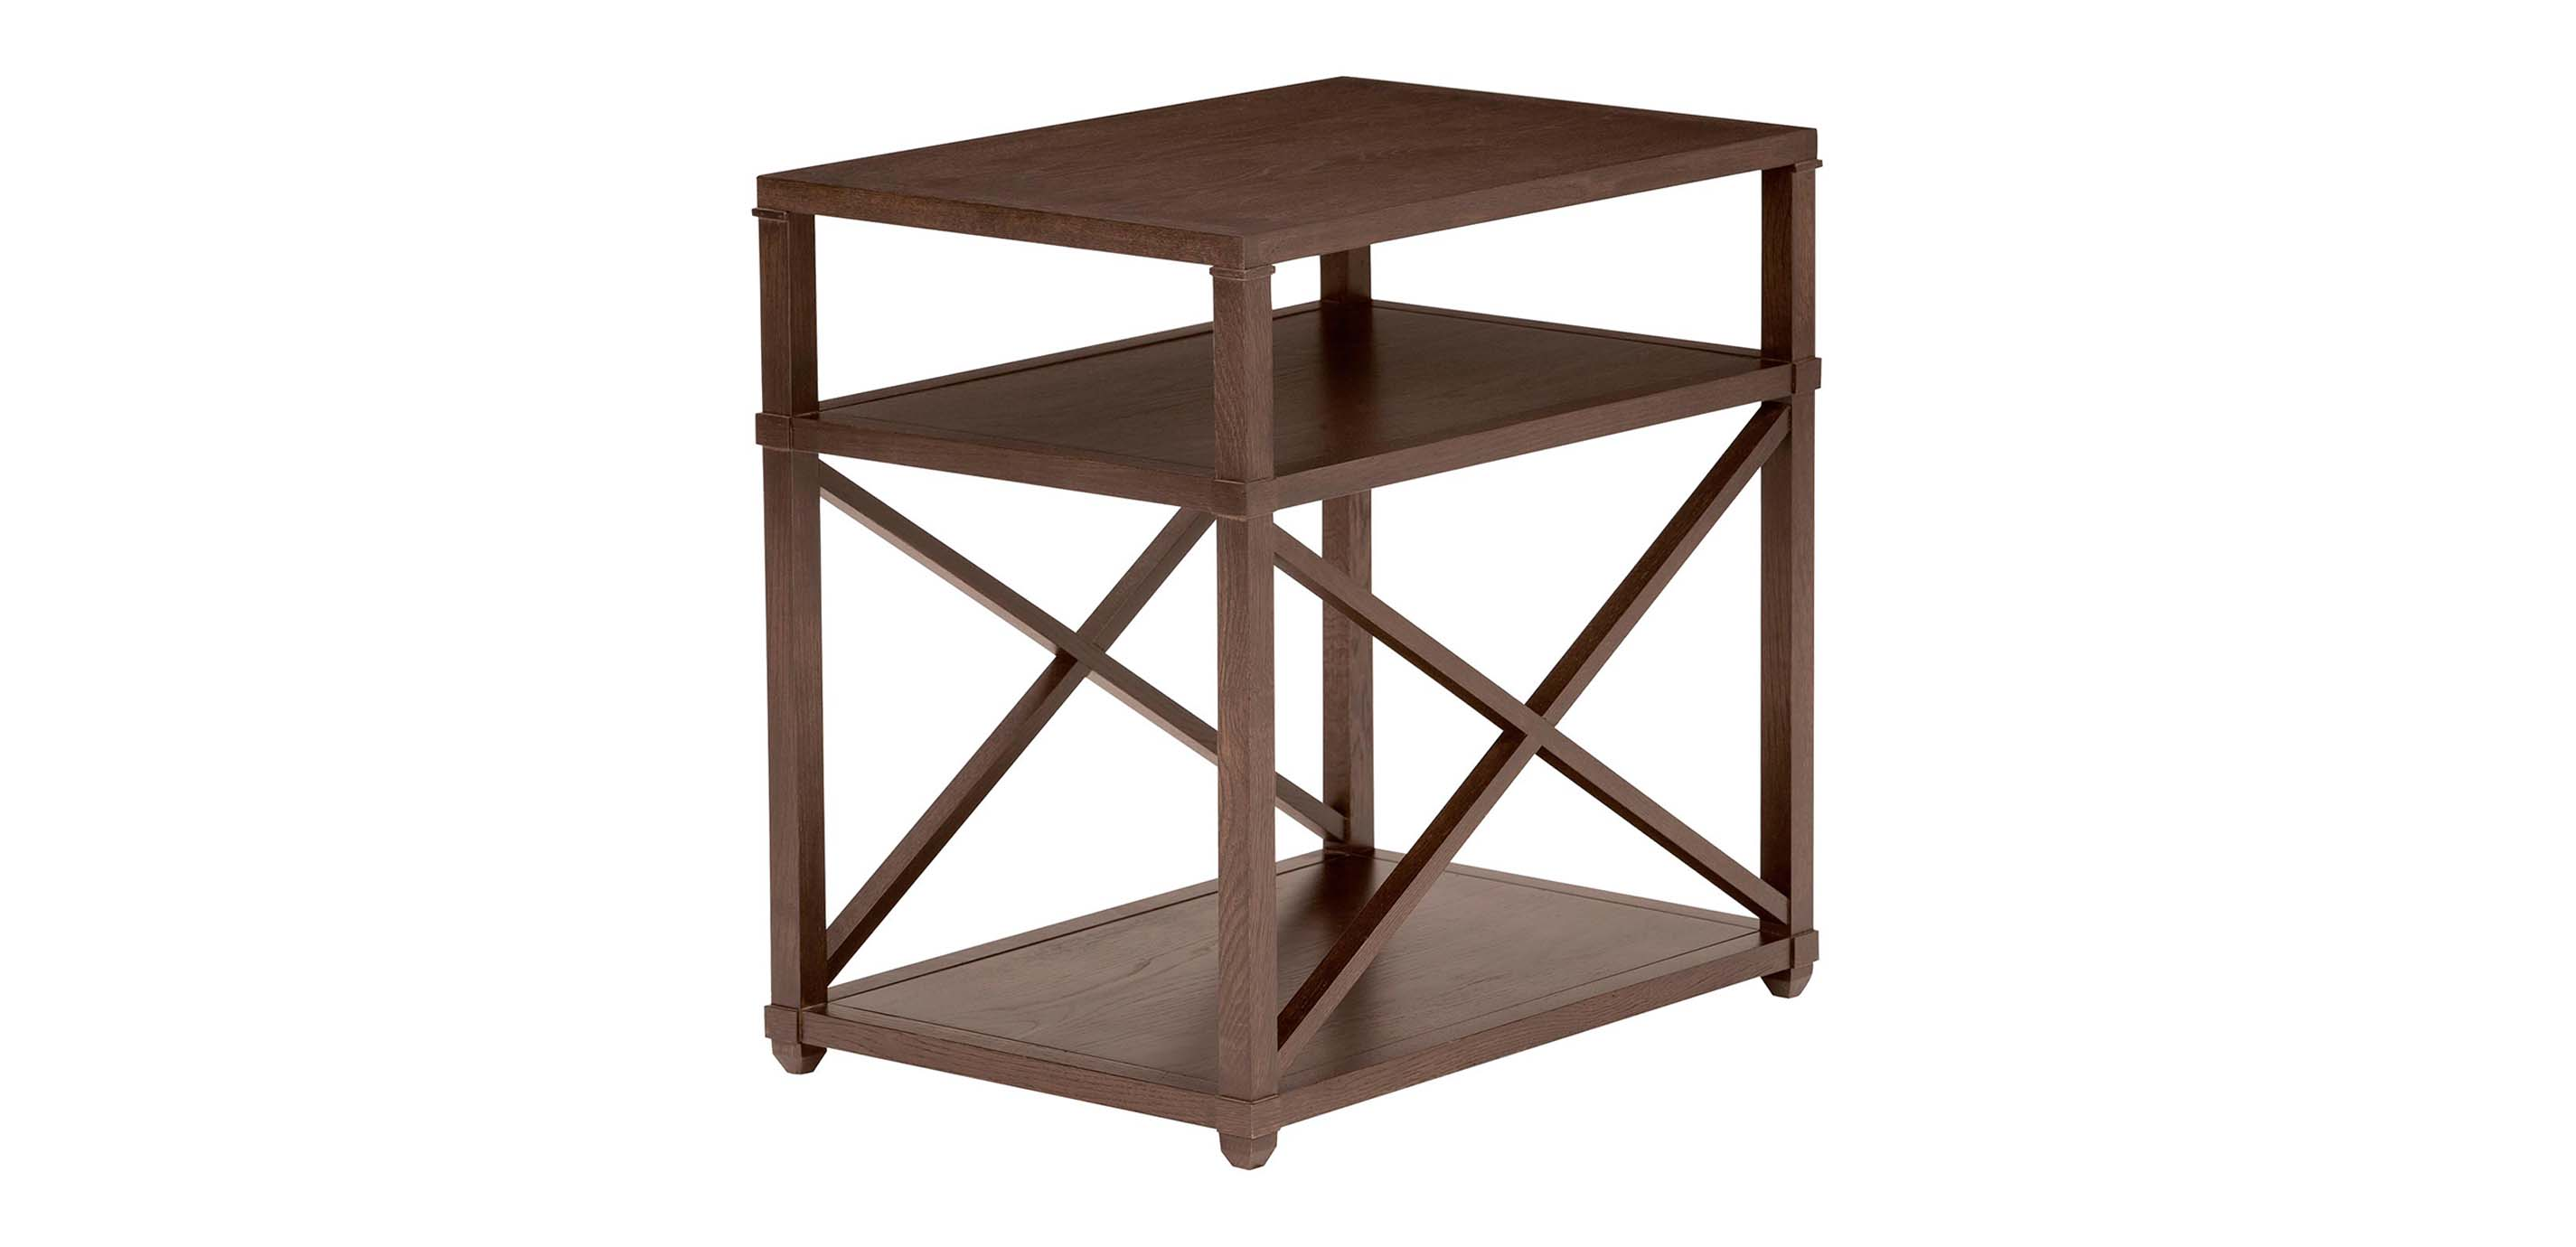 Images Highland Rectangular End Table , , Large_gray